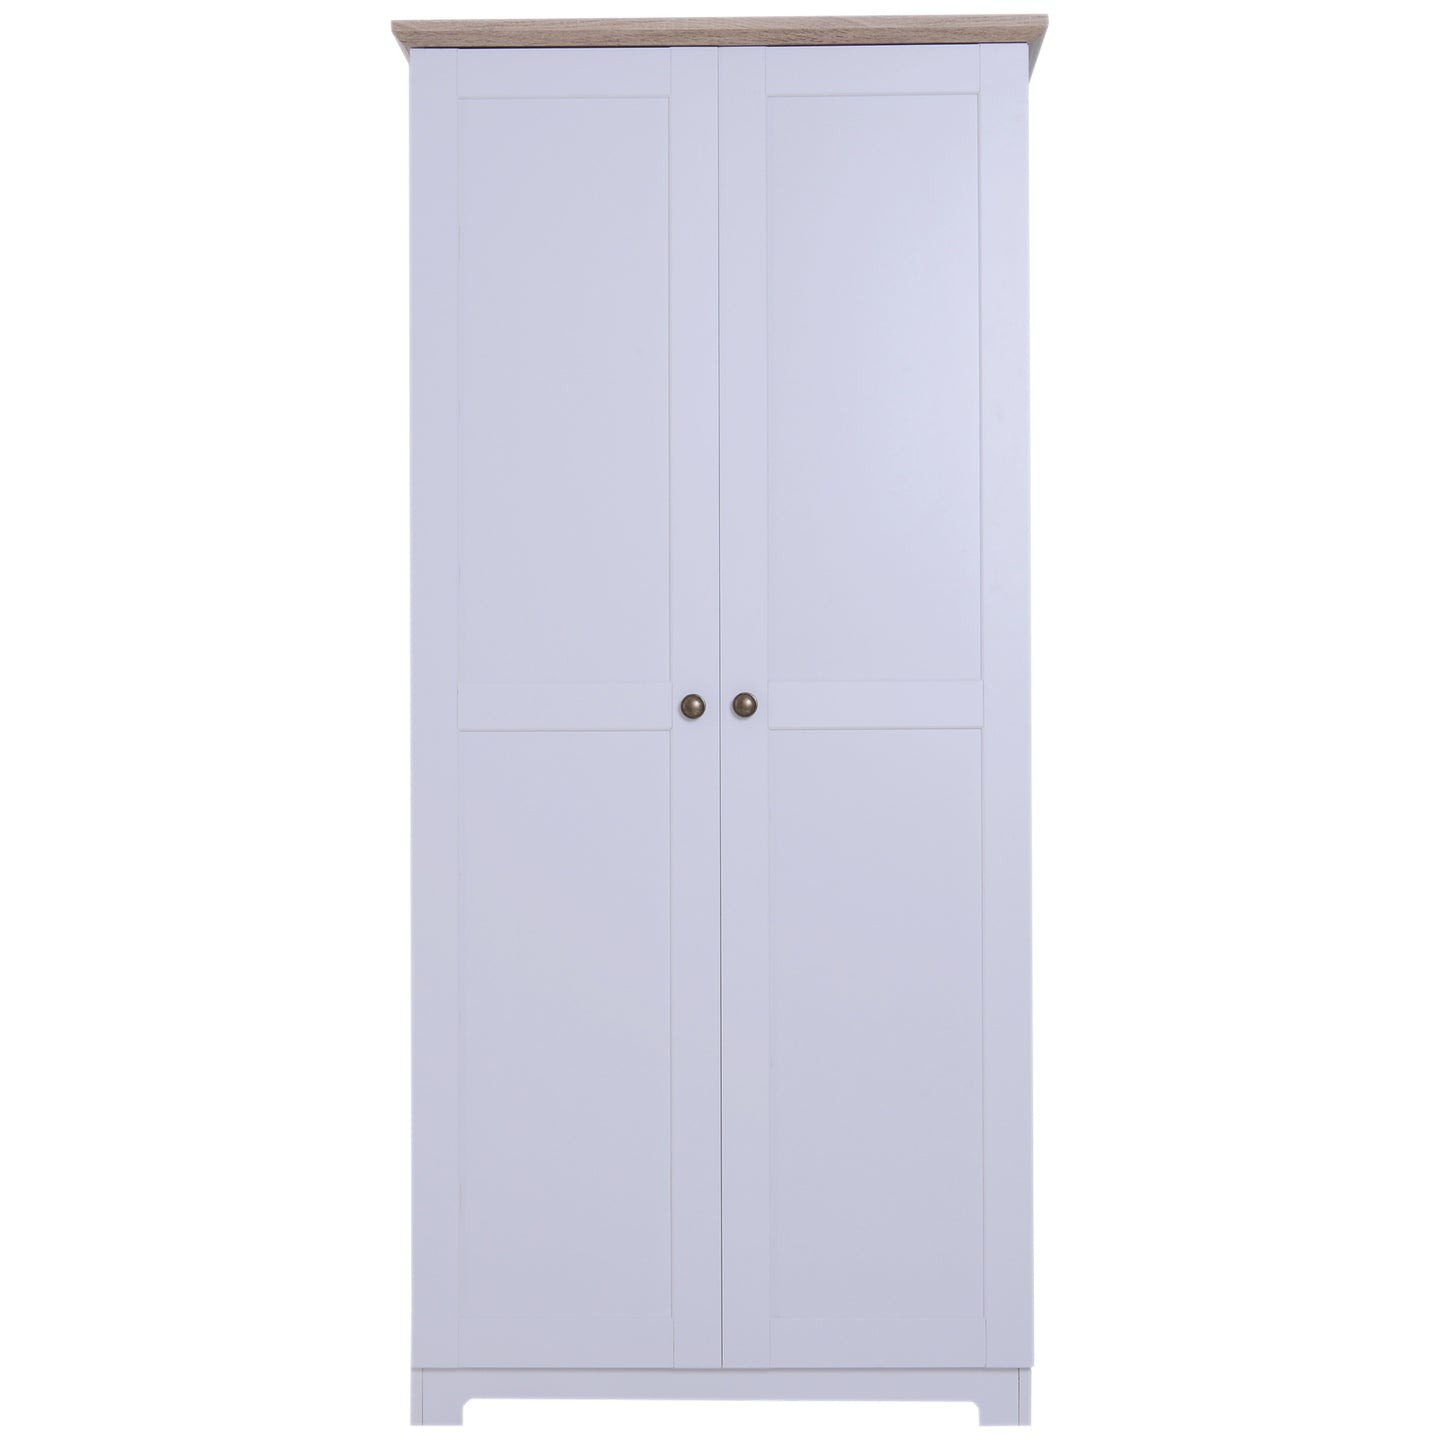 HOMCOM 172cm Wooden Storage Cabinet Cupboard With 2 Doors 4 Shelves White Living Room Bedroom Office